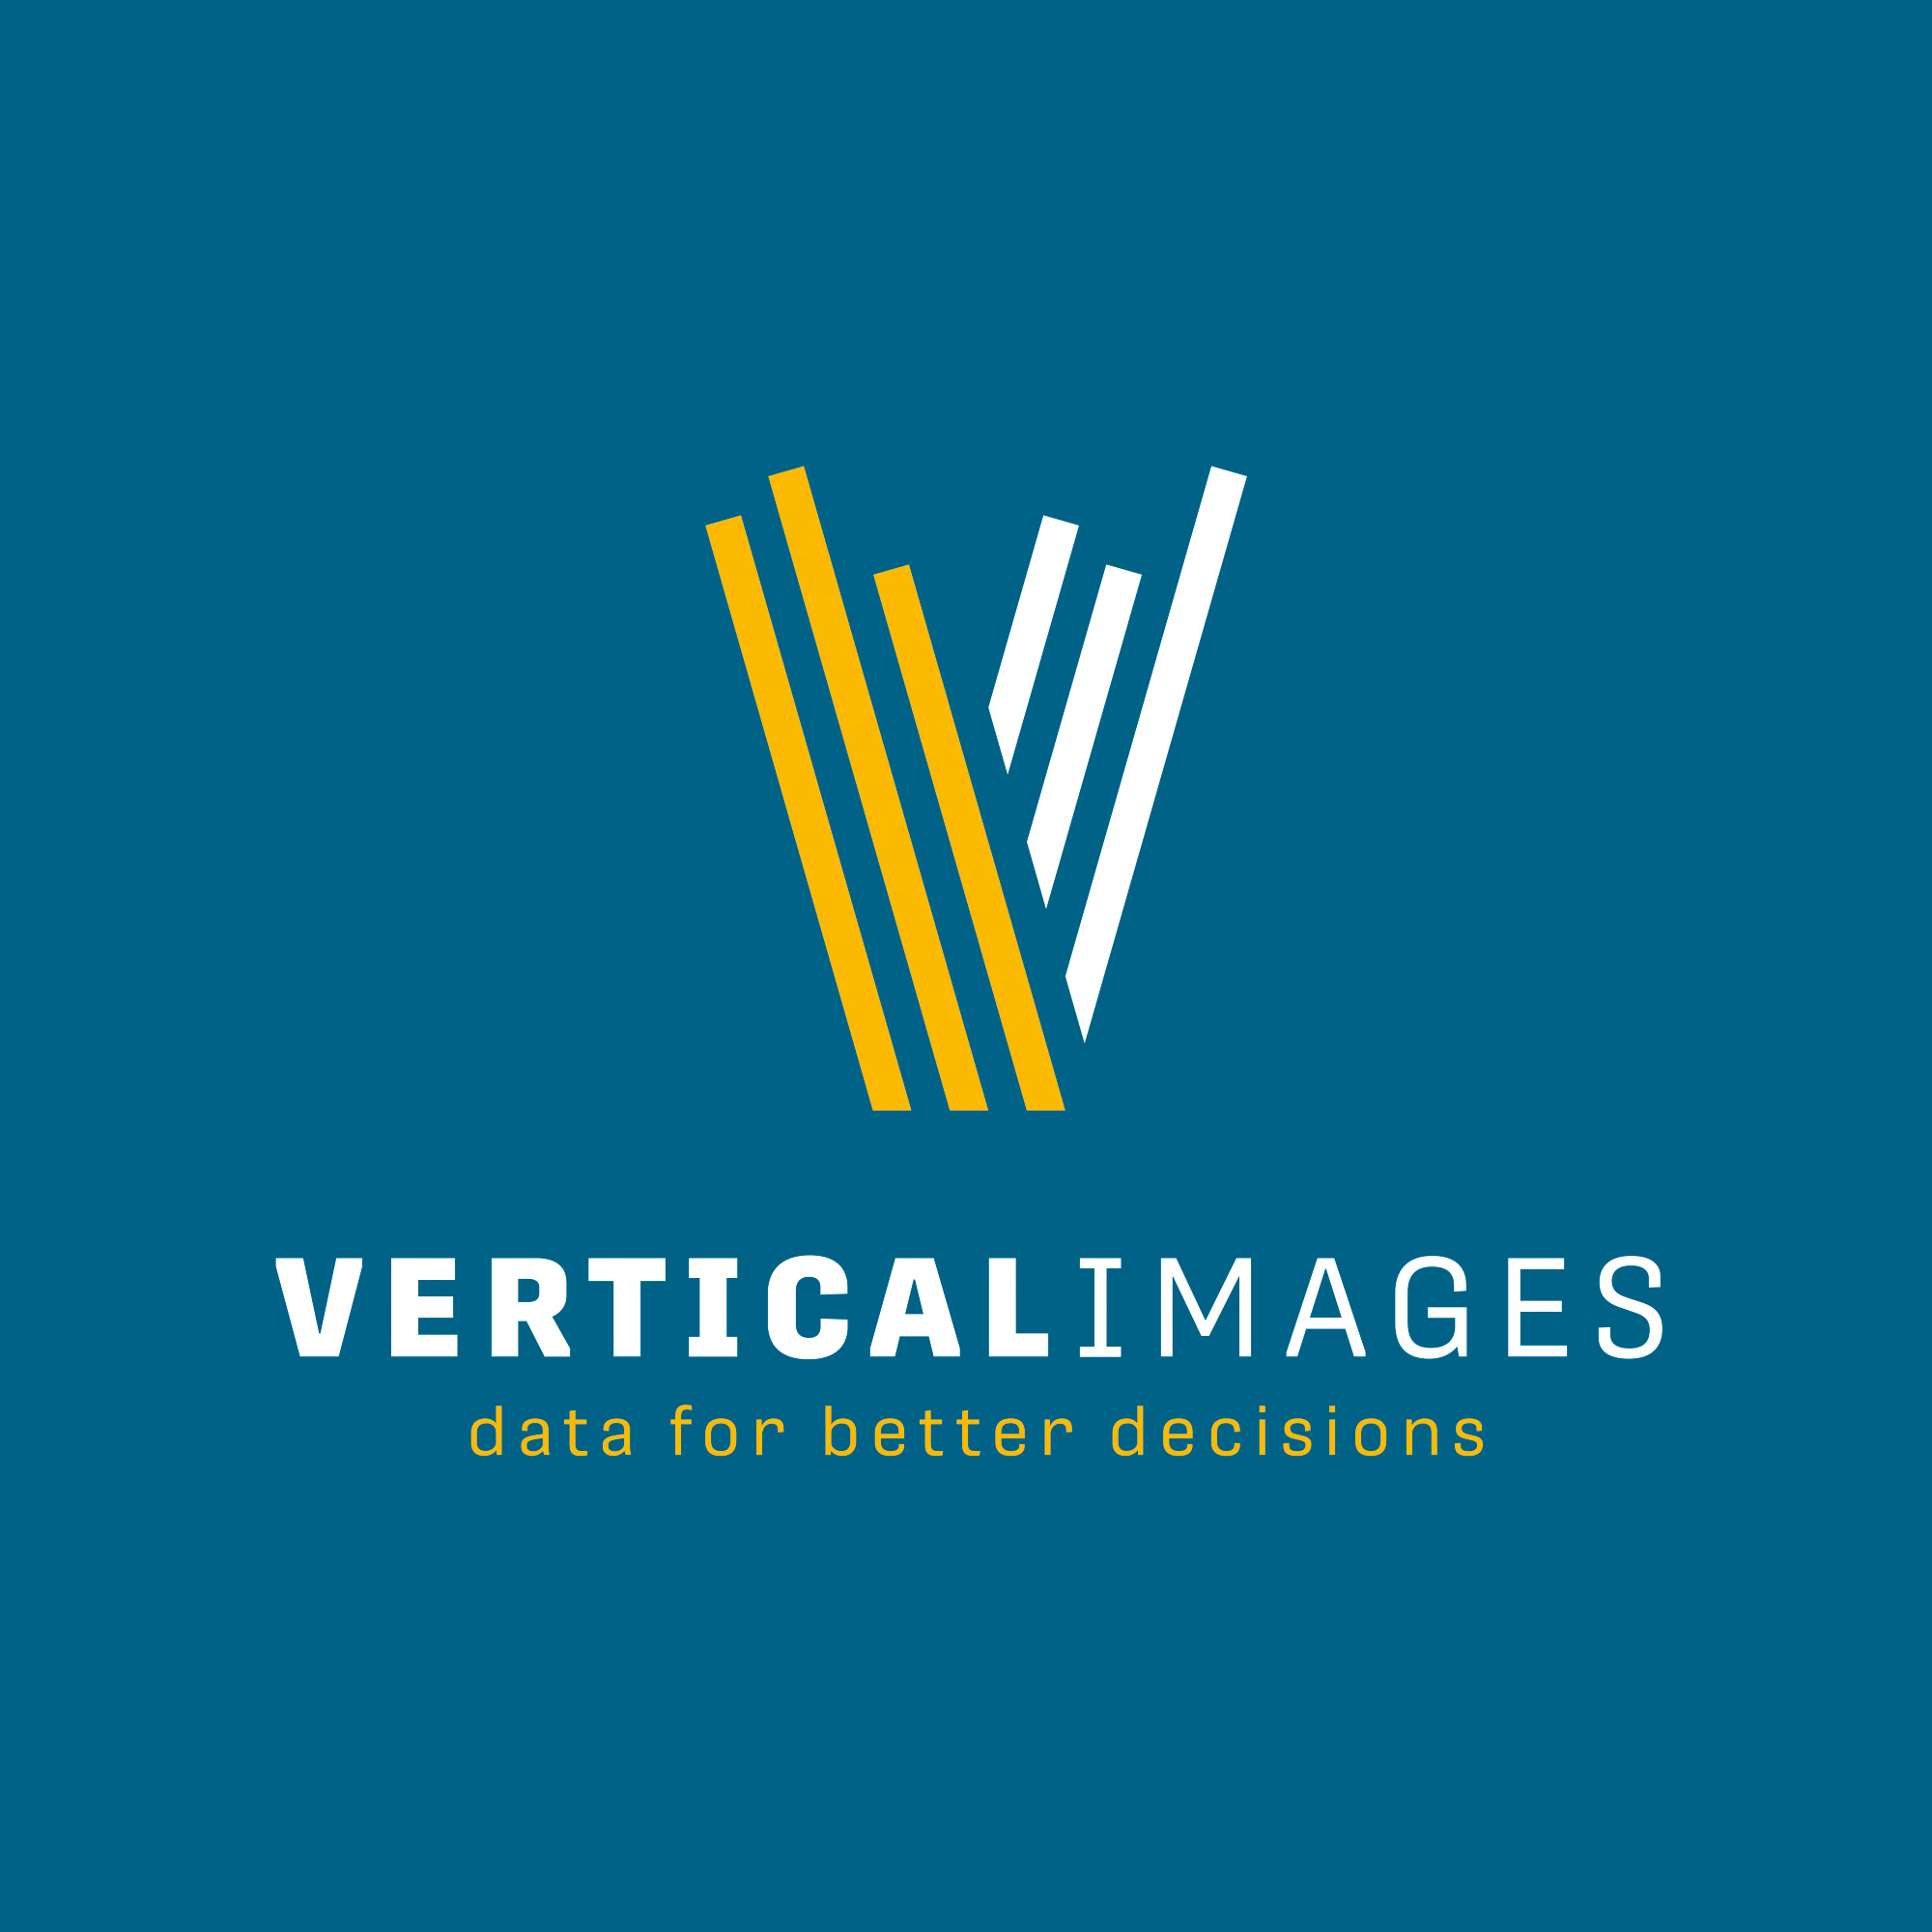 [album/Products_Model_Product/119/Vertical_IMAGES_logo_4c_inv_B.jpg]